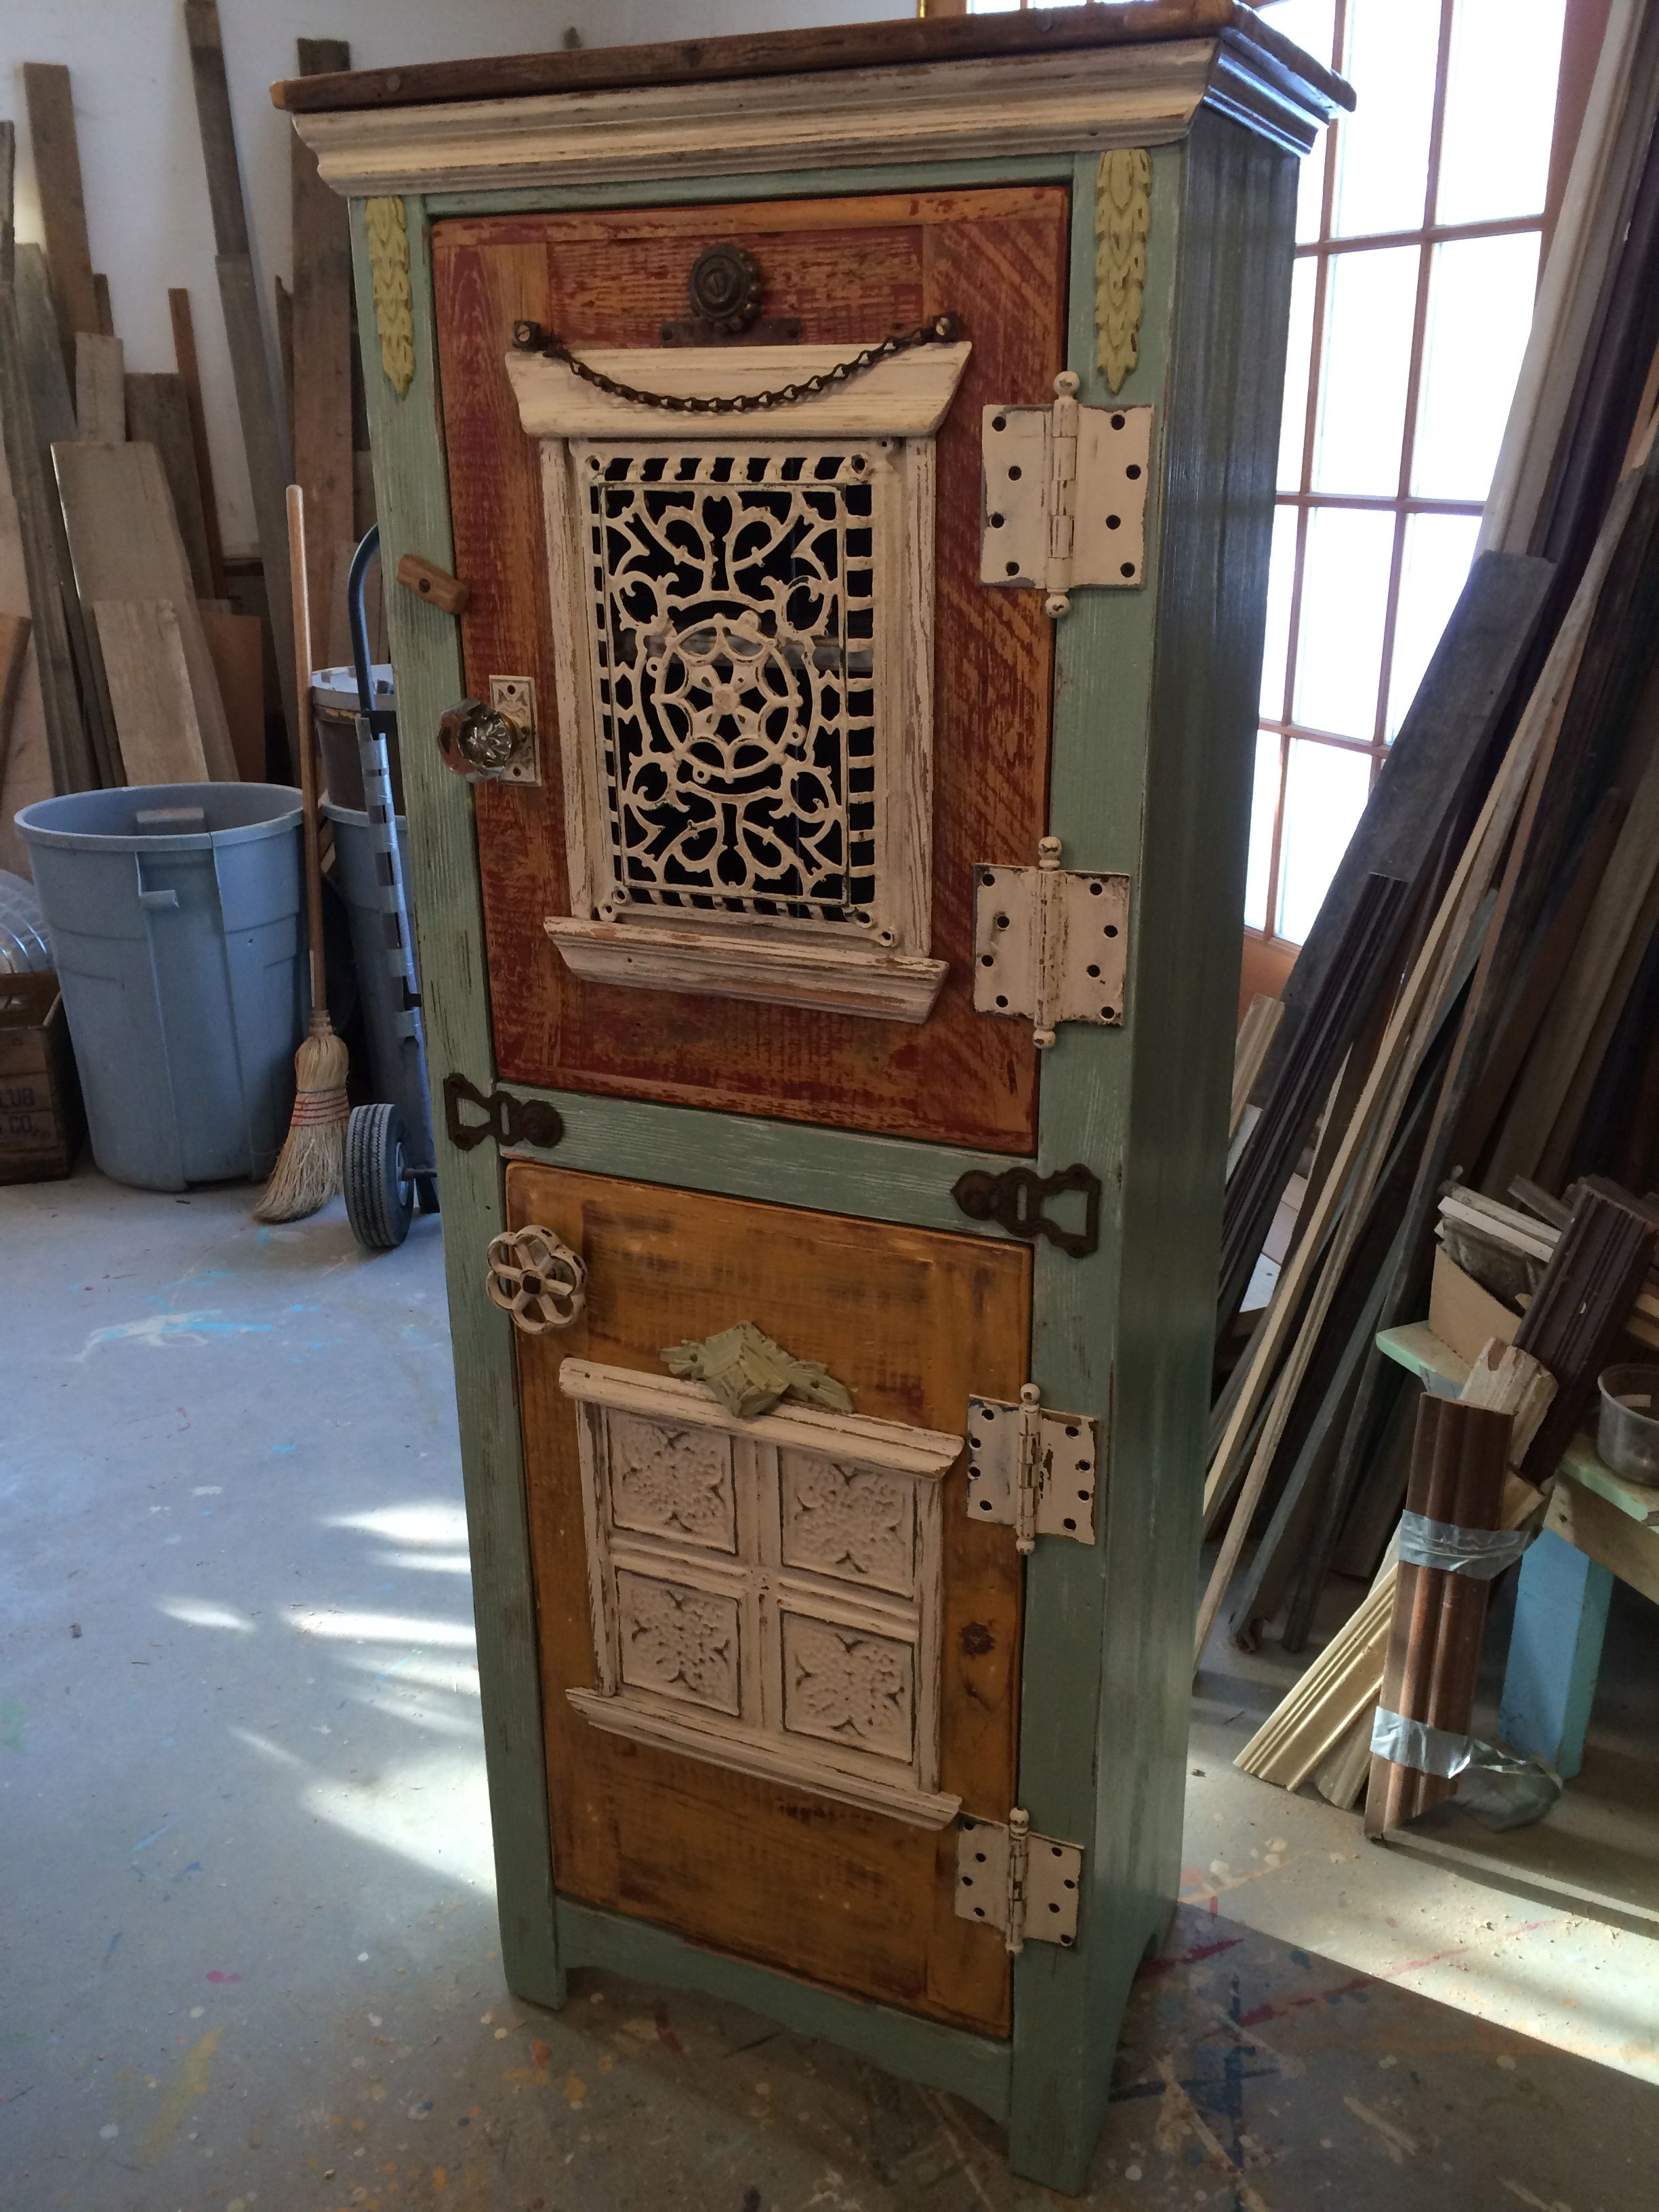 Hand Crafted Steampunk Cupboard by Demolition Revival